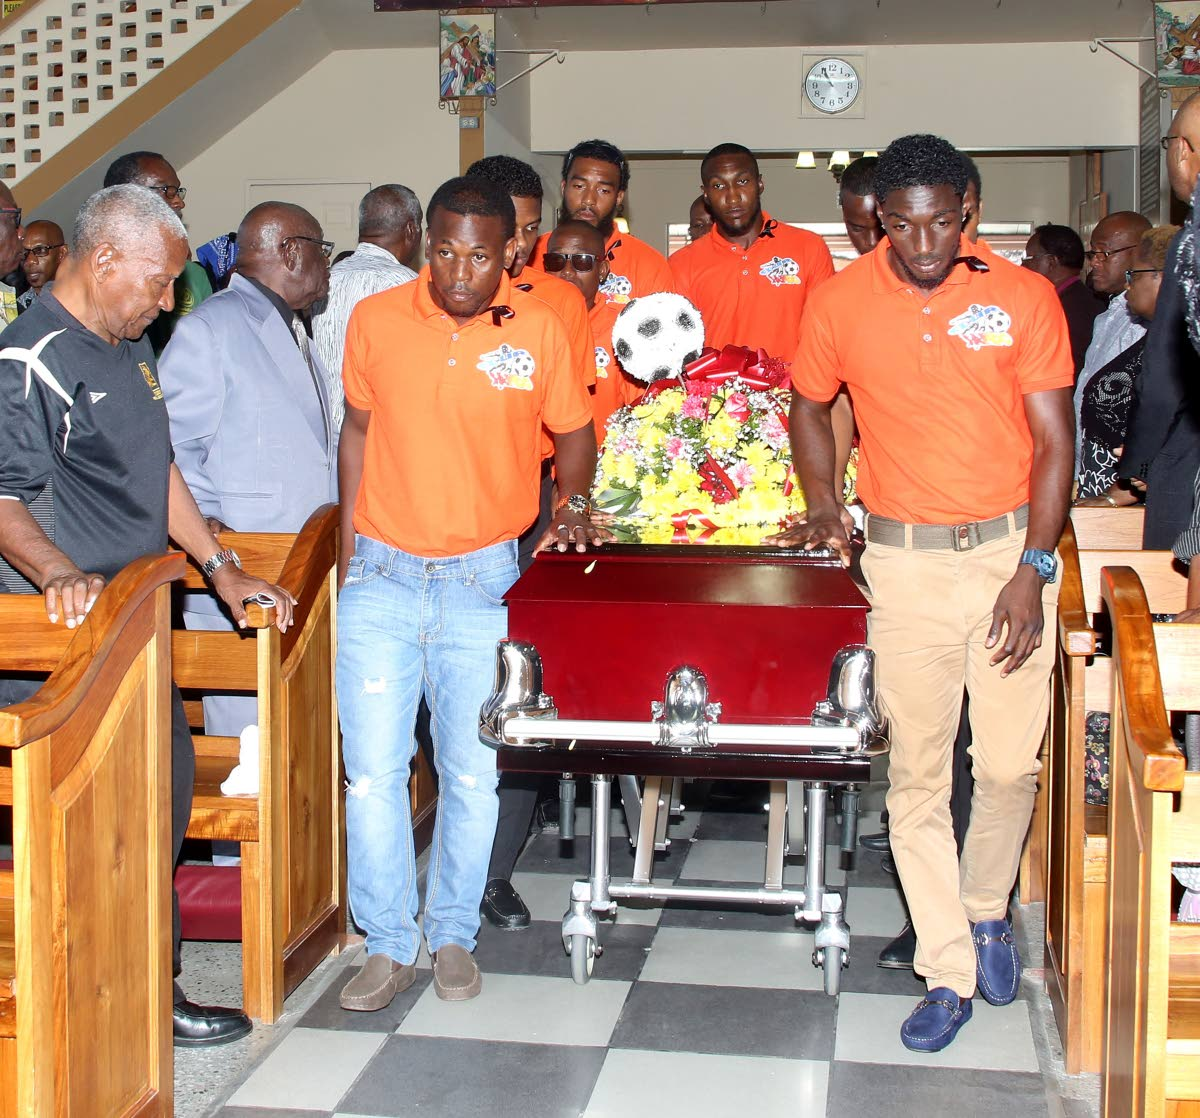 Club Sando footballers carry the casket of former TTFA director of football Muhammad Isa at his funeral at Point Fortin RC yesterday.